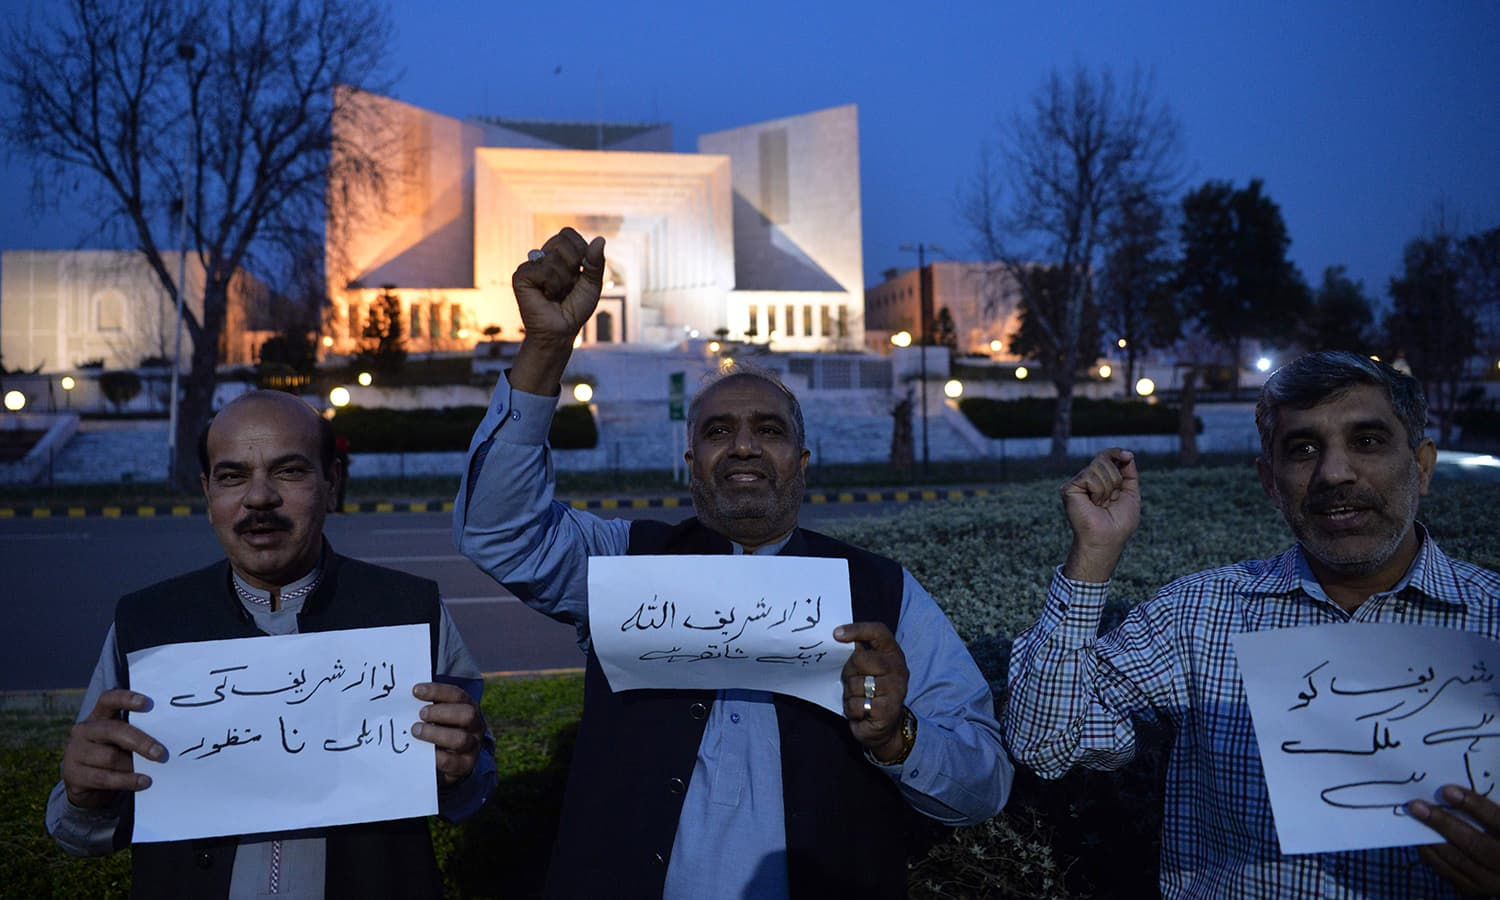 Supporters of ex-PM Nawaz Sharif chant slogans against the court verdict in front of the Supreme Court building on Wednesday. — AFP